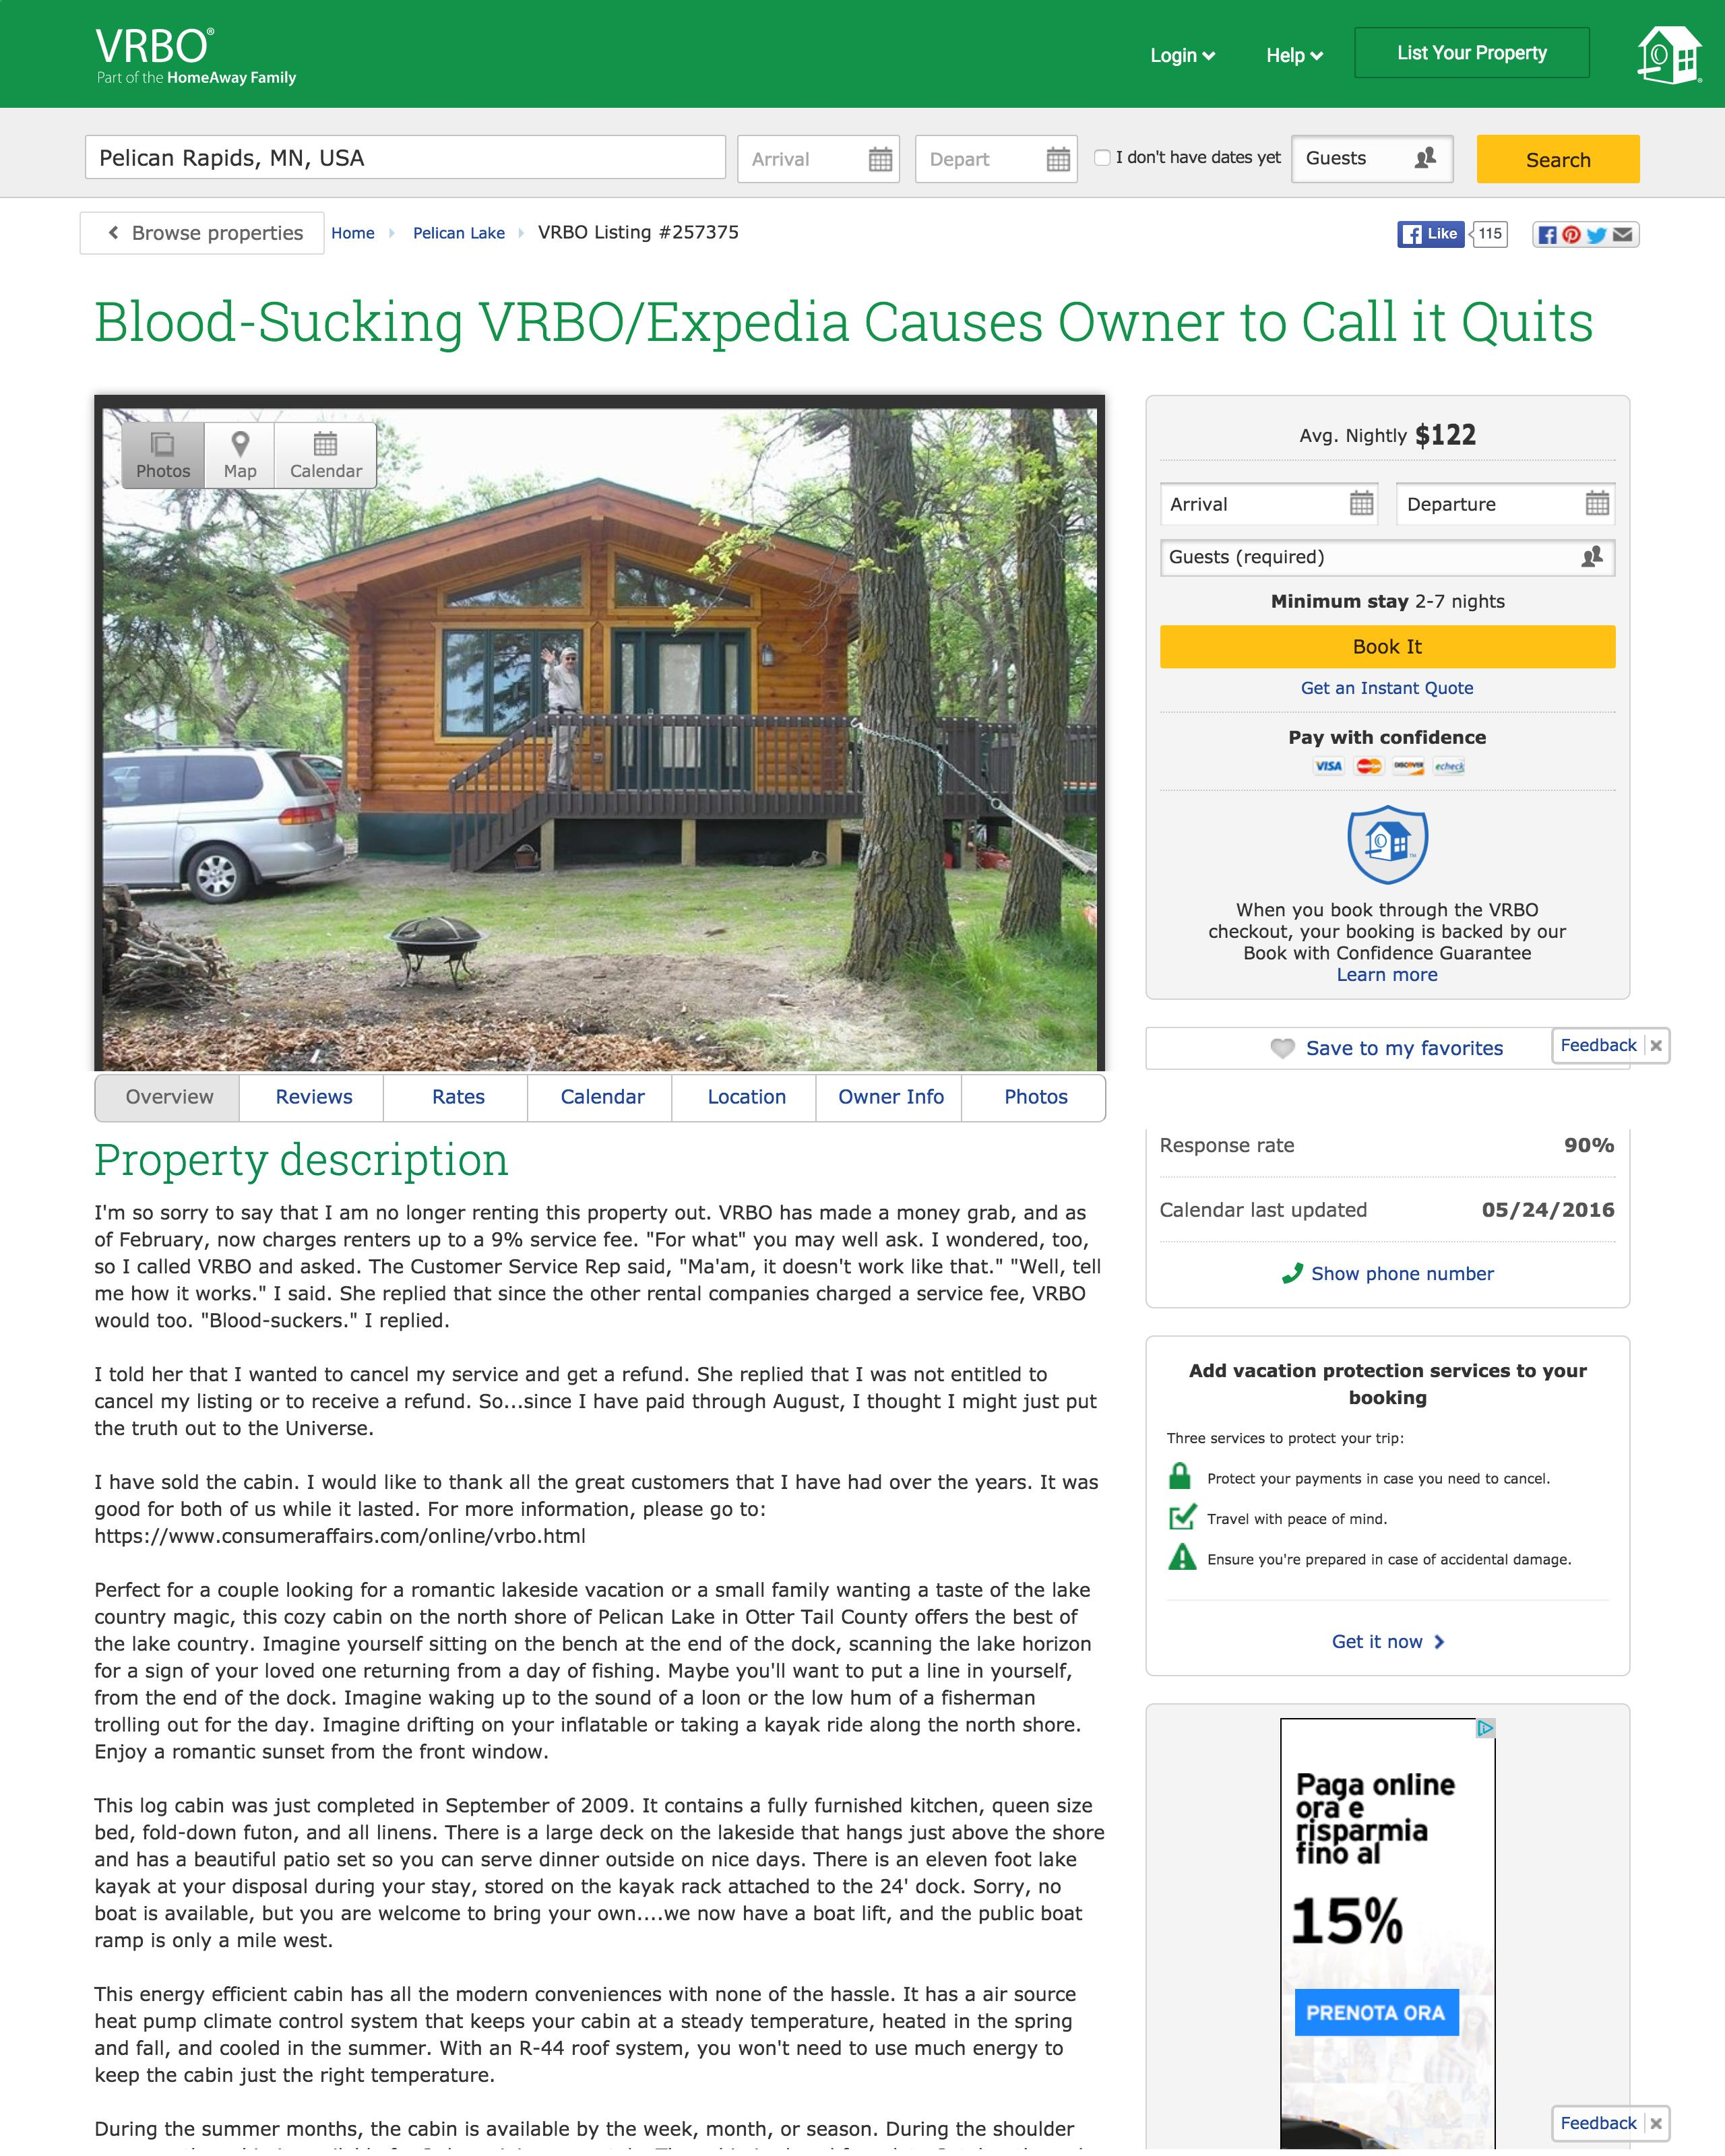 BloodSucking VRBOExpedia Causes Owner To Call It Quits